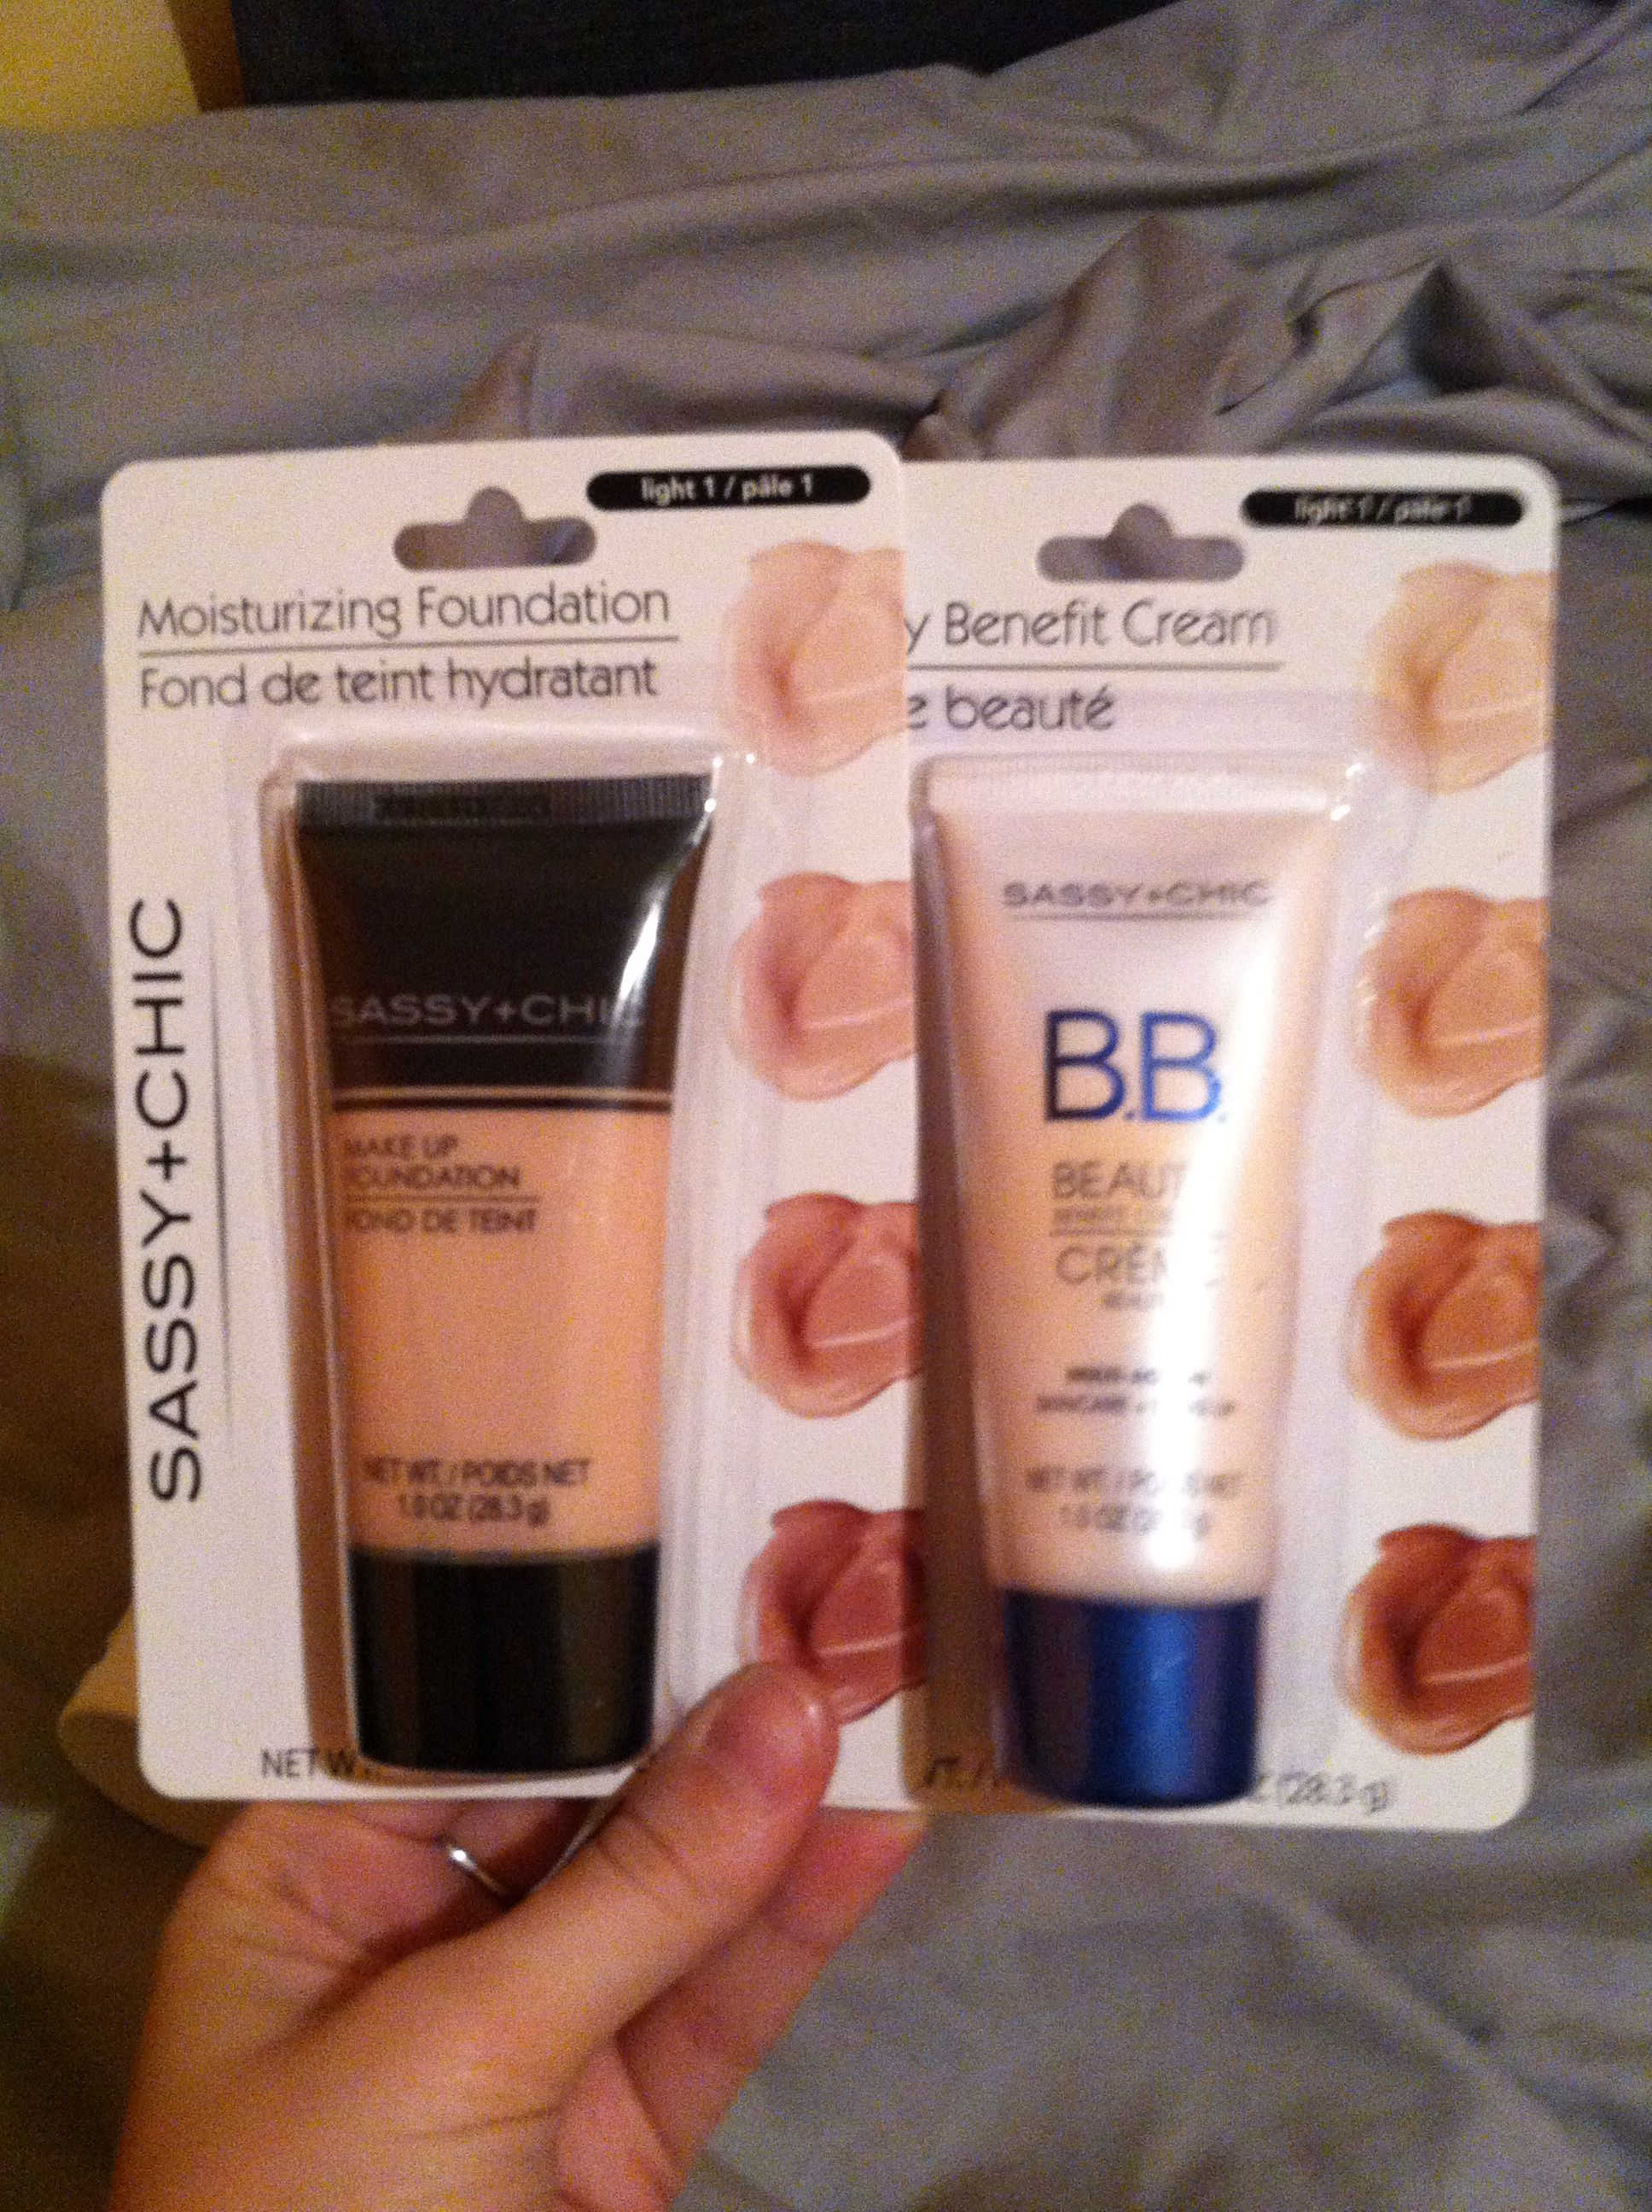 Sassy+chic BB cream and foundation in light/pale. Found